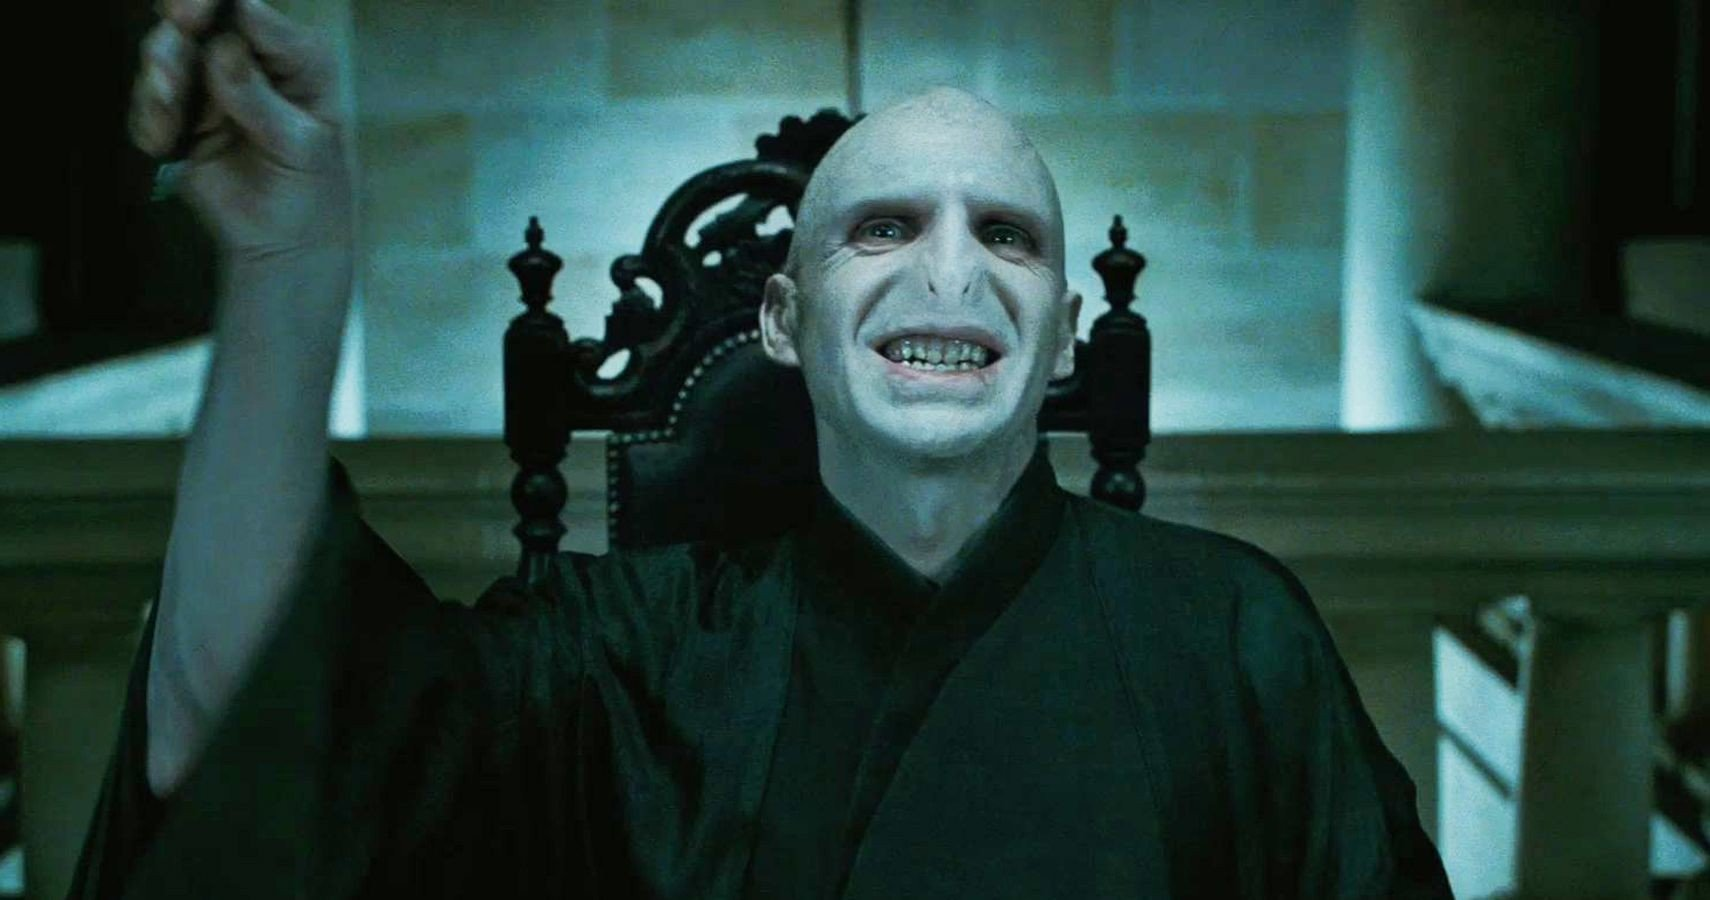 Lord Voldemort is the best supervillain